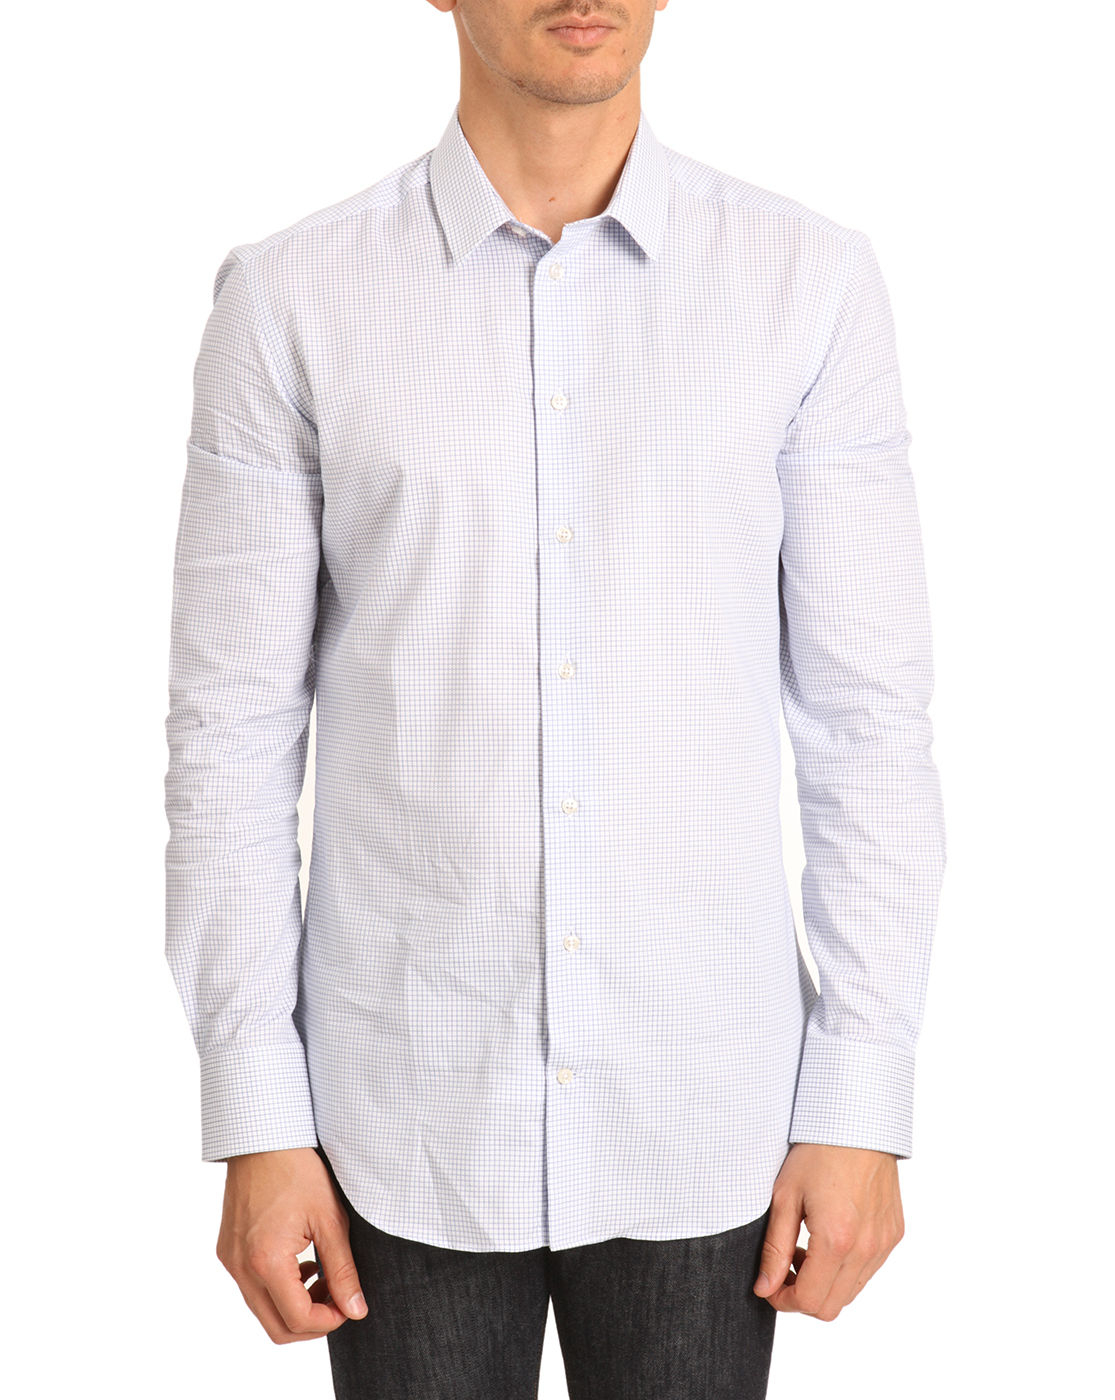 Armani Navy Slim Fit Shirt With Gingham Collar In Blue For